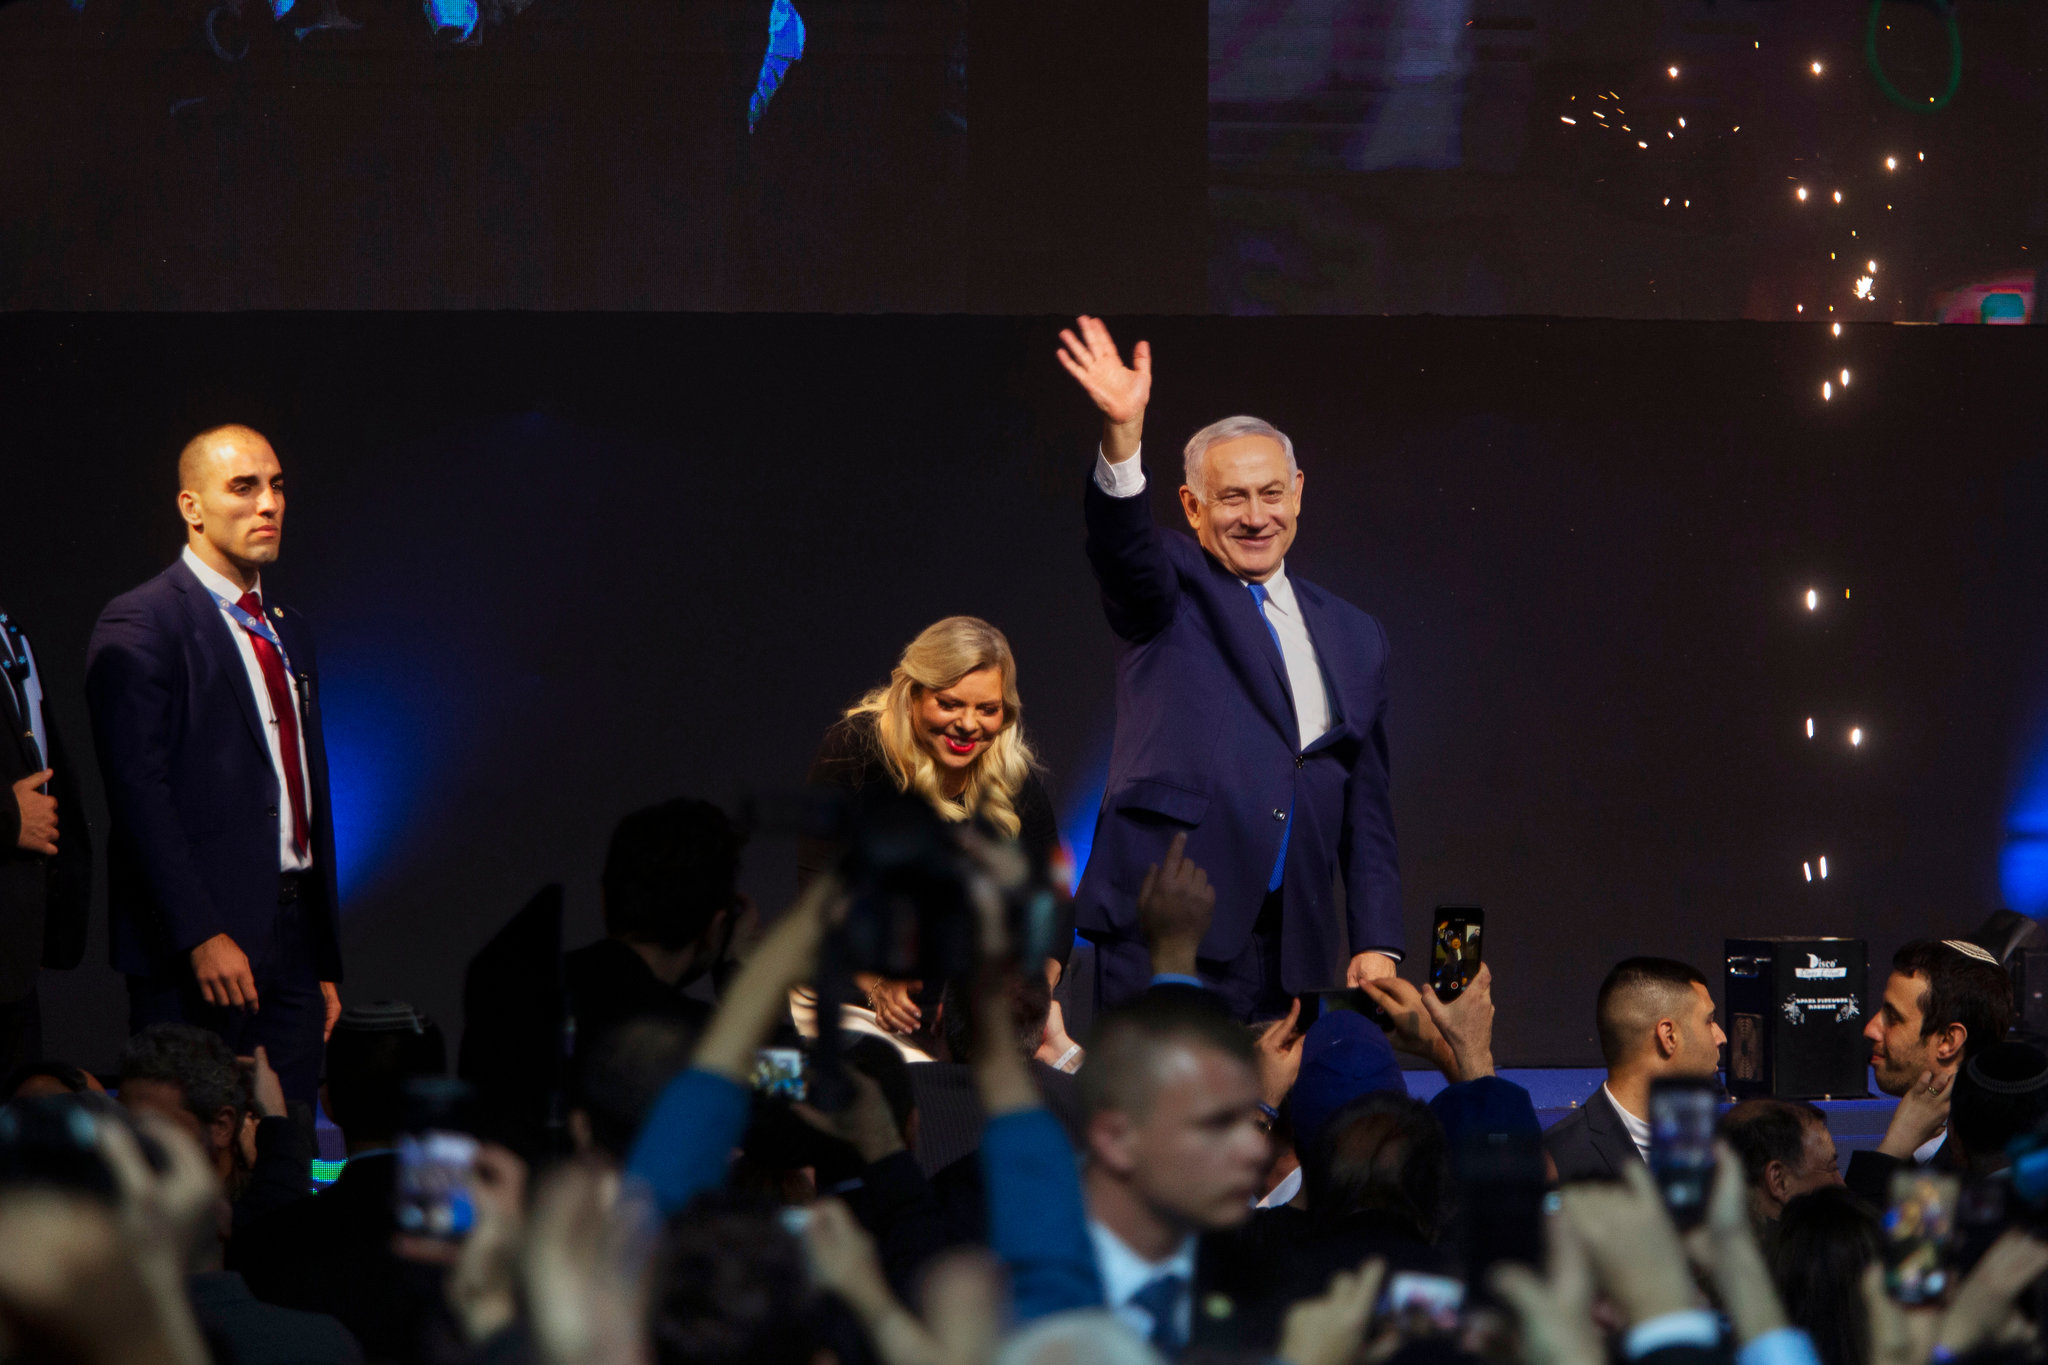 Prime Minister Benjamin Netanyahu of Israel appeared close to winning a fourth consecutive term, and his fifth overall, according to the latest results. Credit Dan Balilty for The New York Times